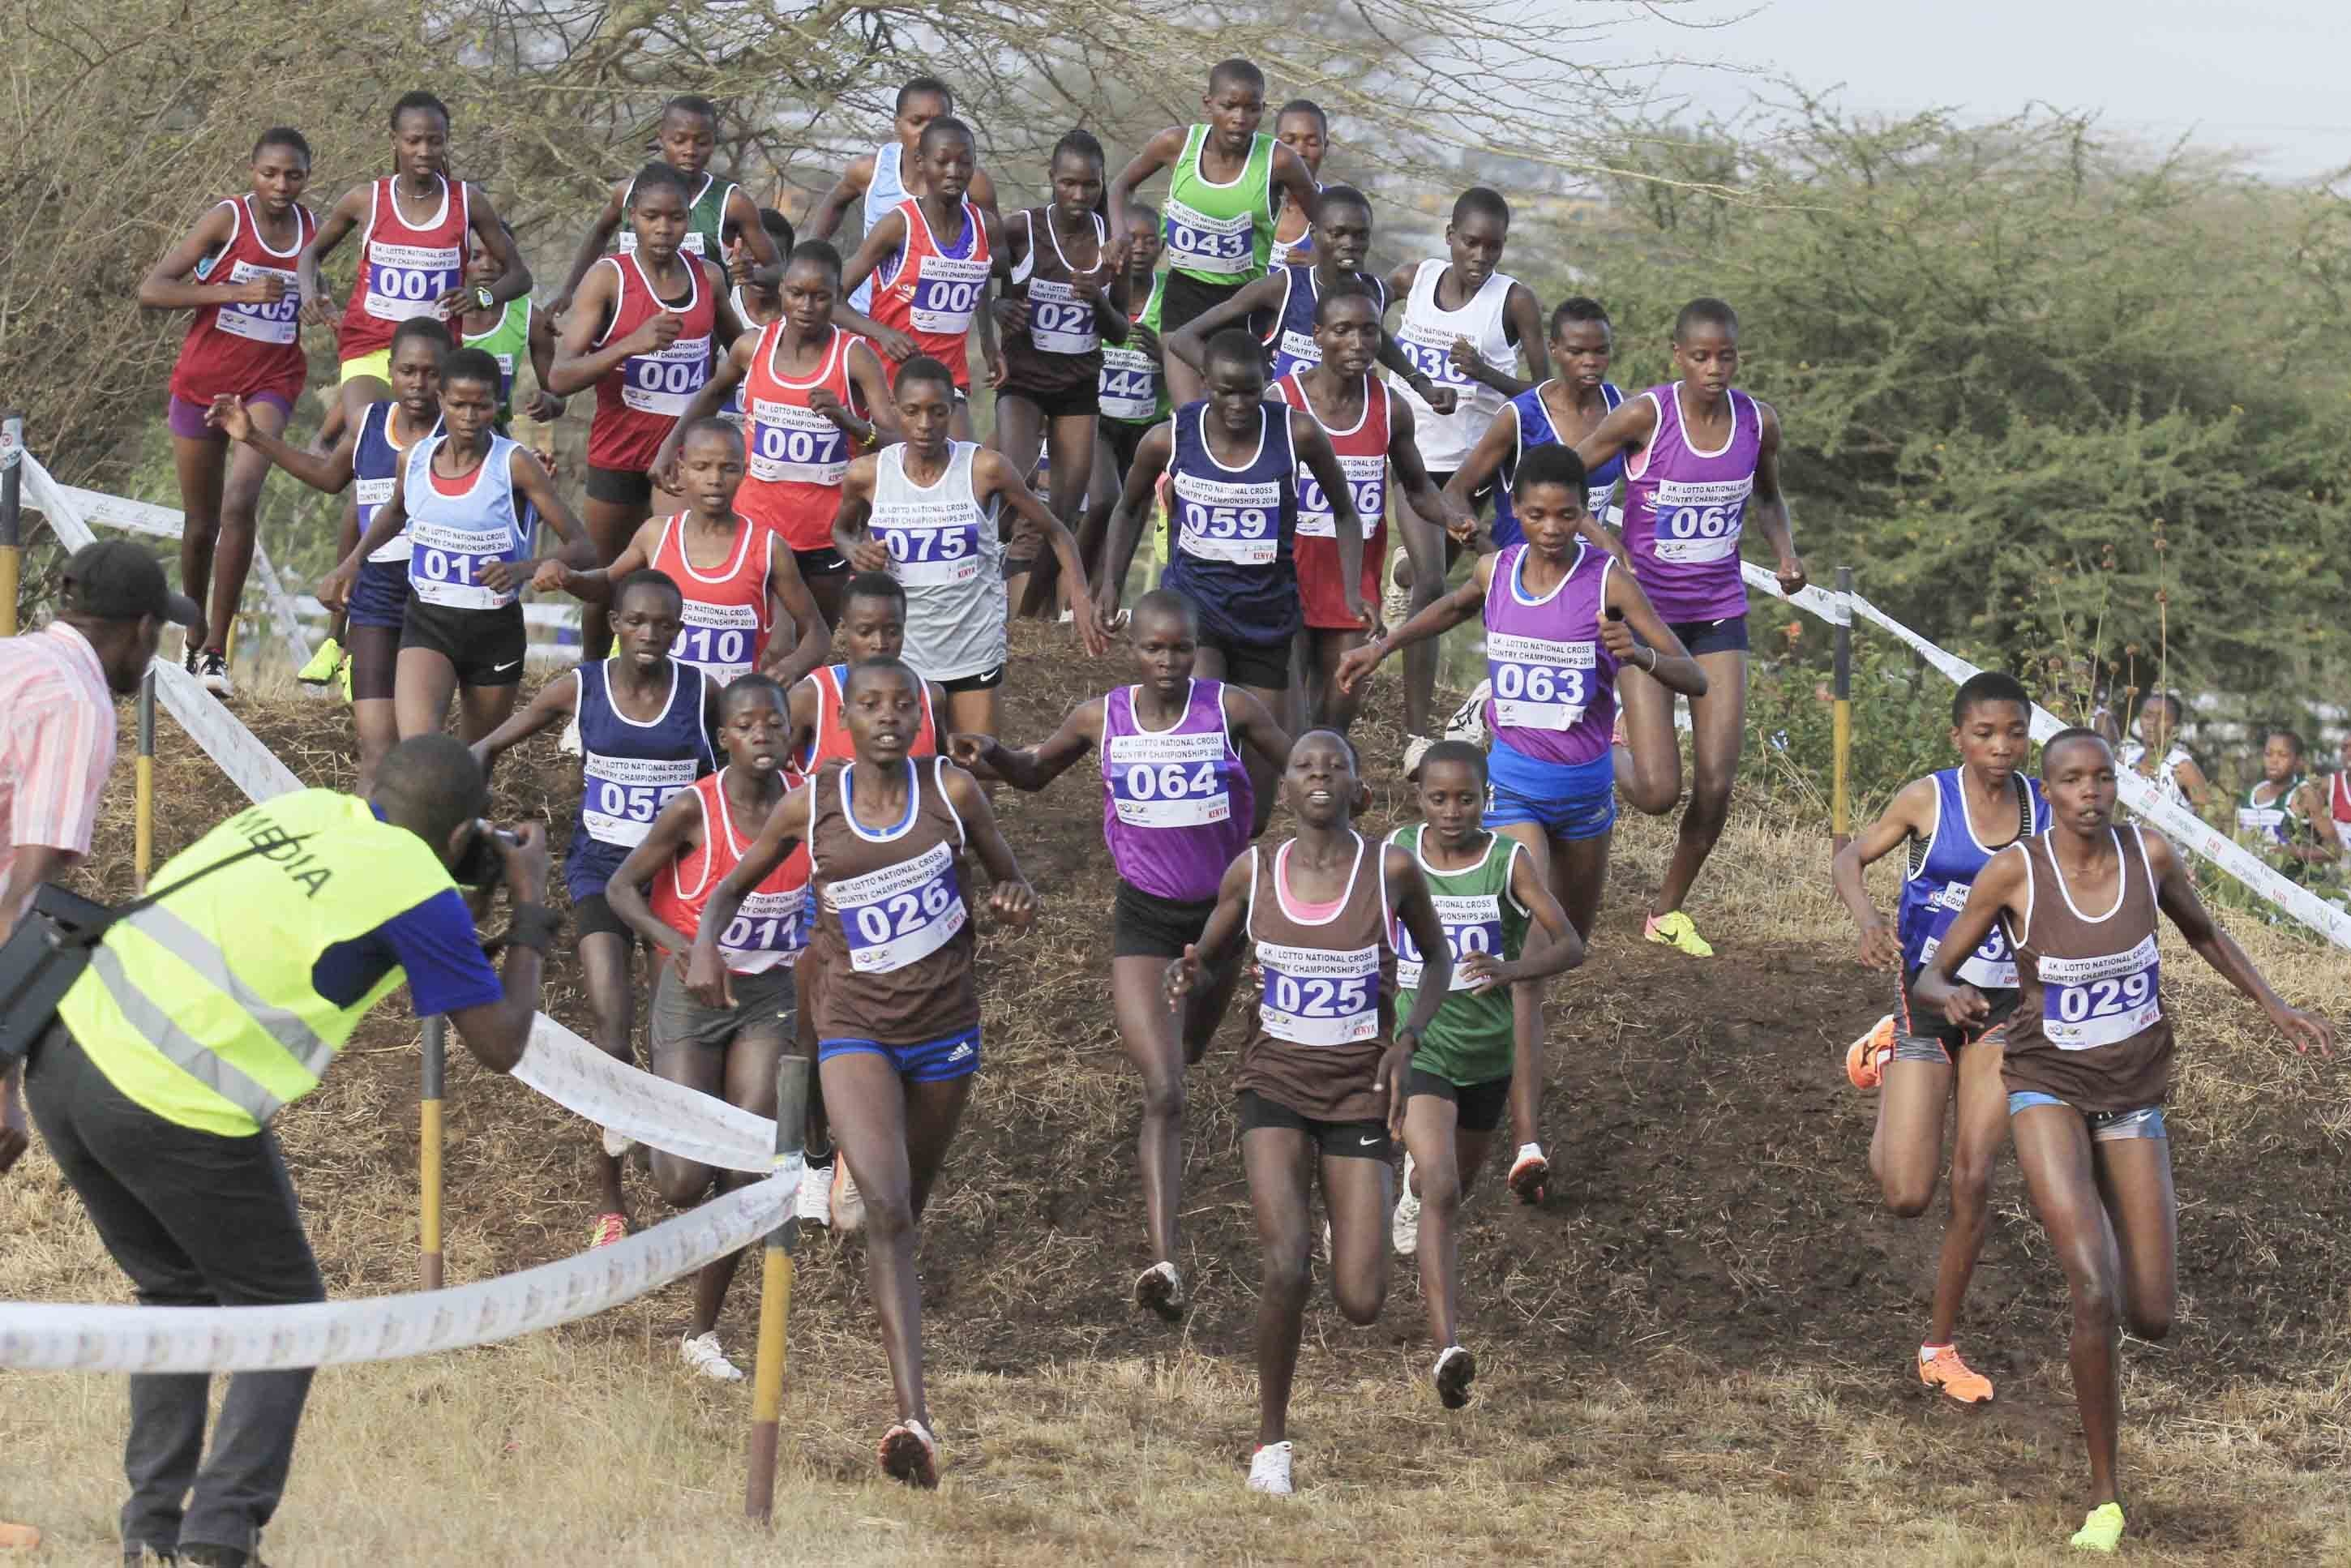 Cross-Country is making its debut at the Buenos Aires 2018 Youth Olympic Games